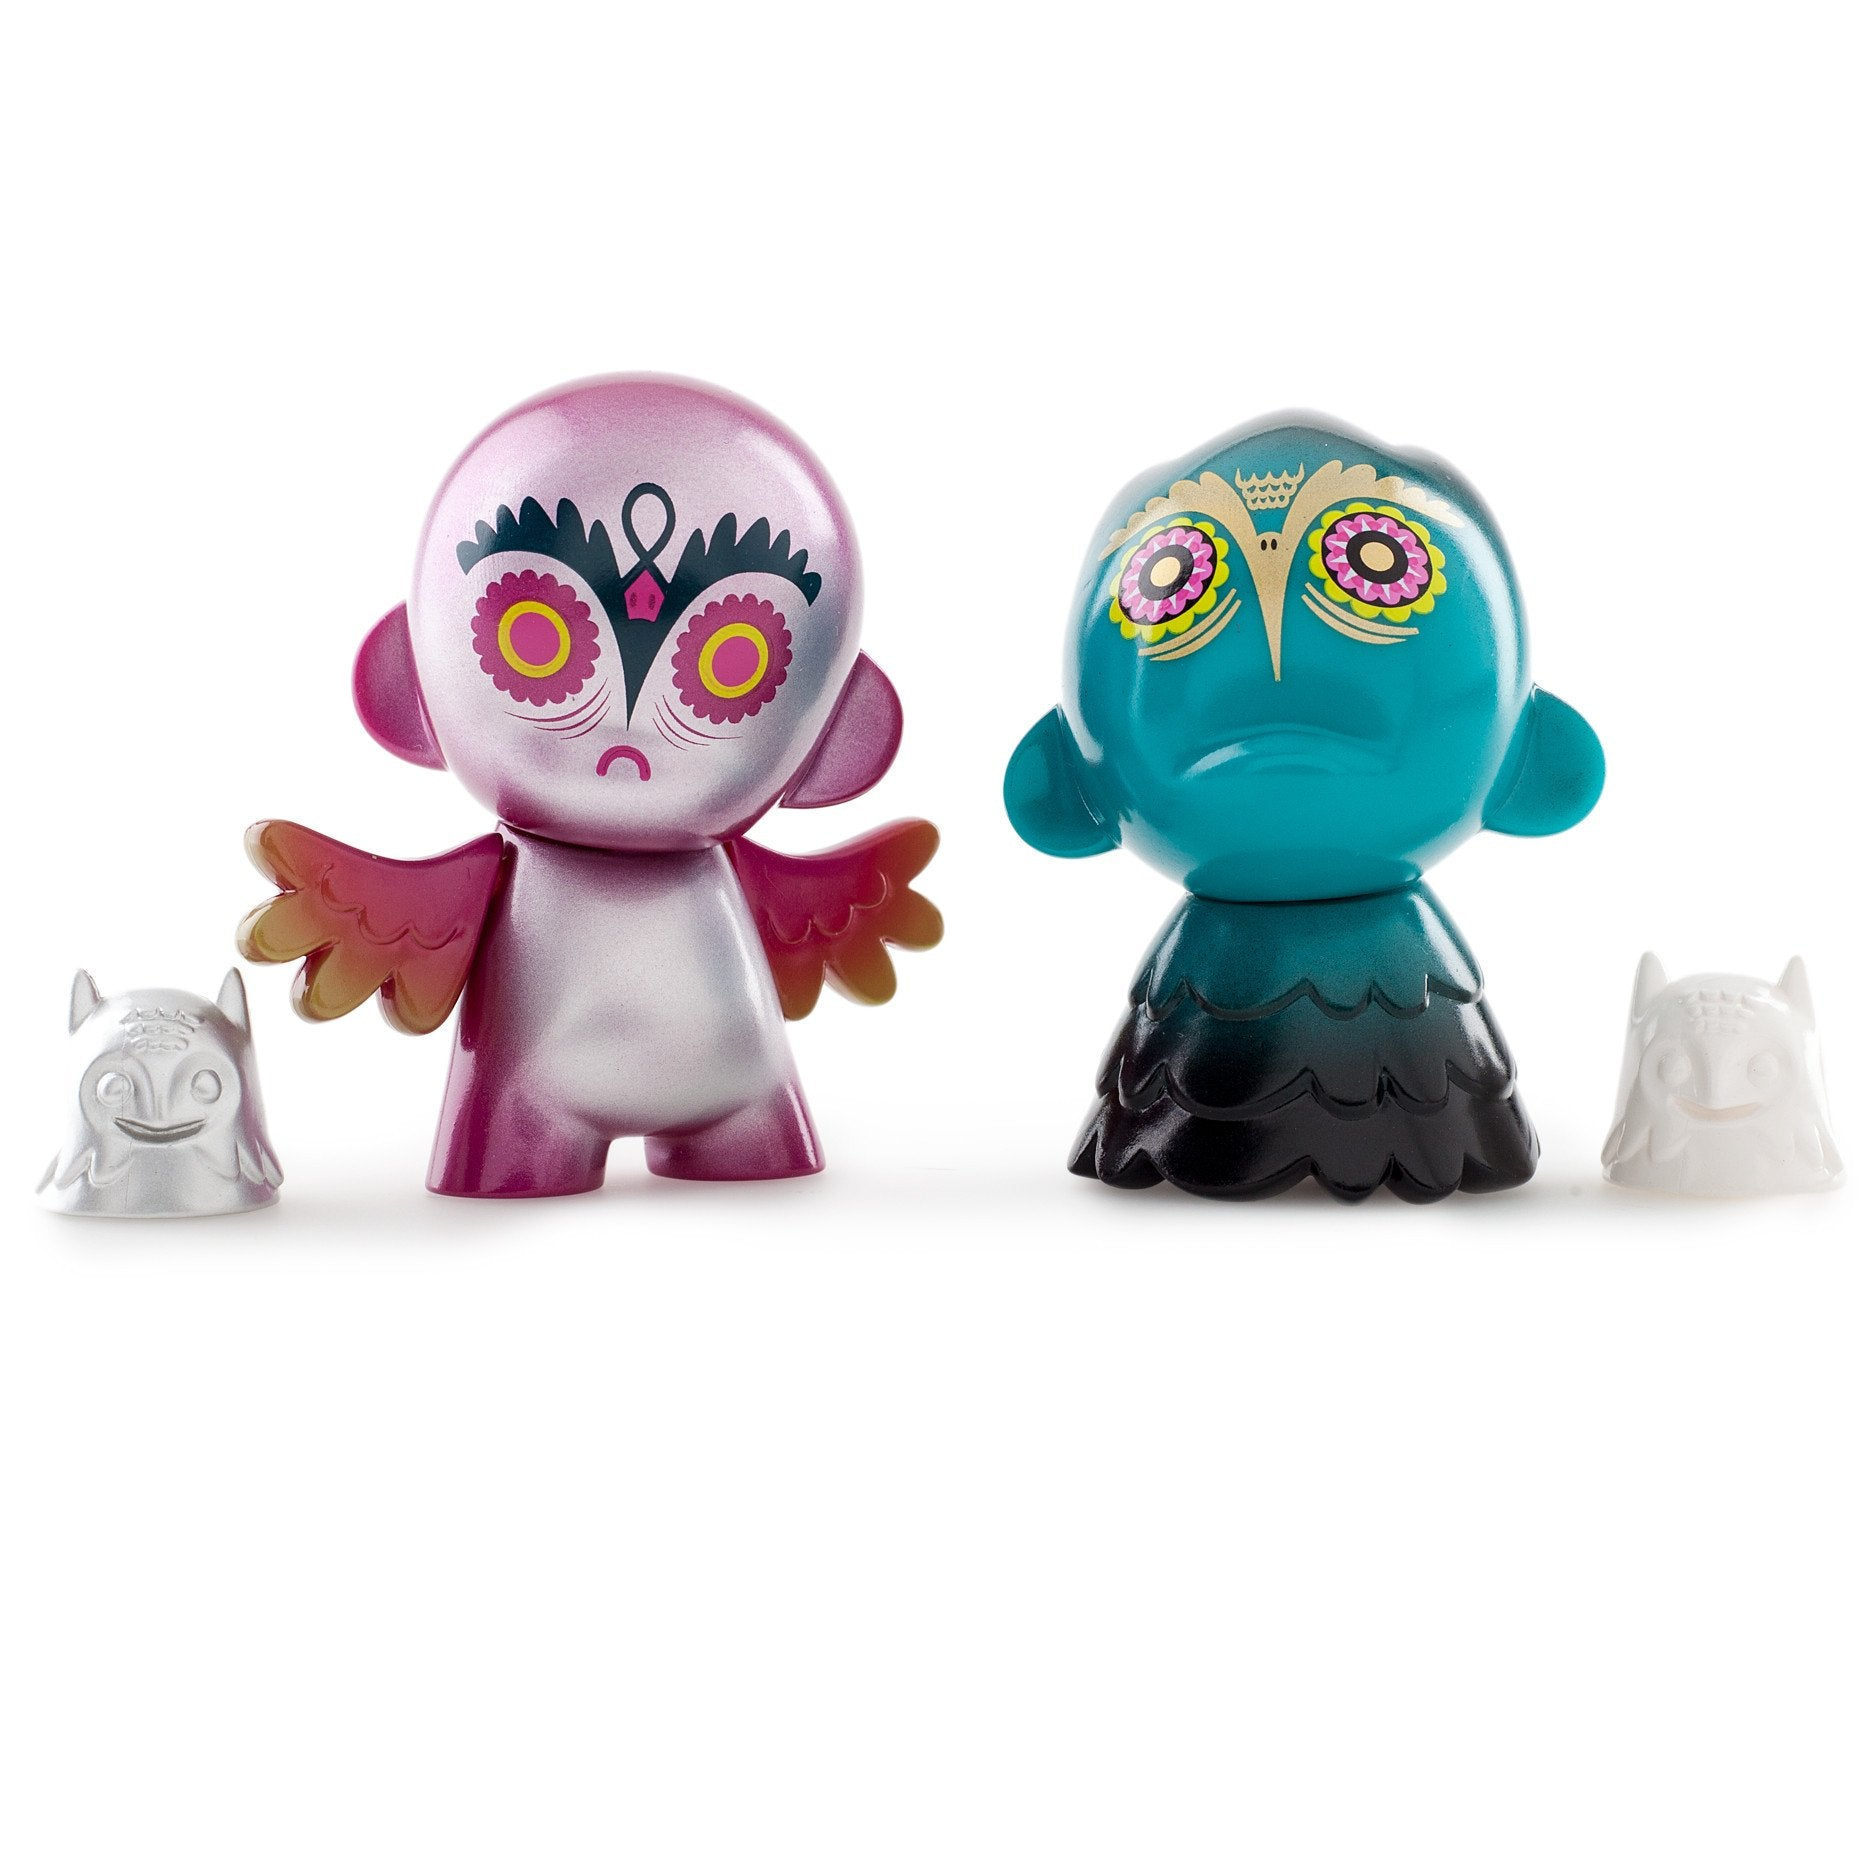 "Nightriders 3"" Mini Series by Nathan Jurevicius - Kidrobot - Designer Art Toys"